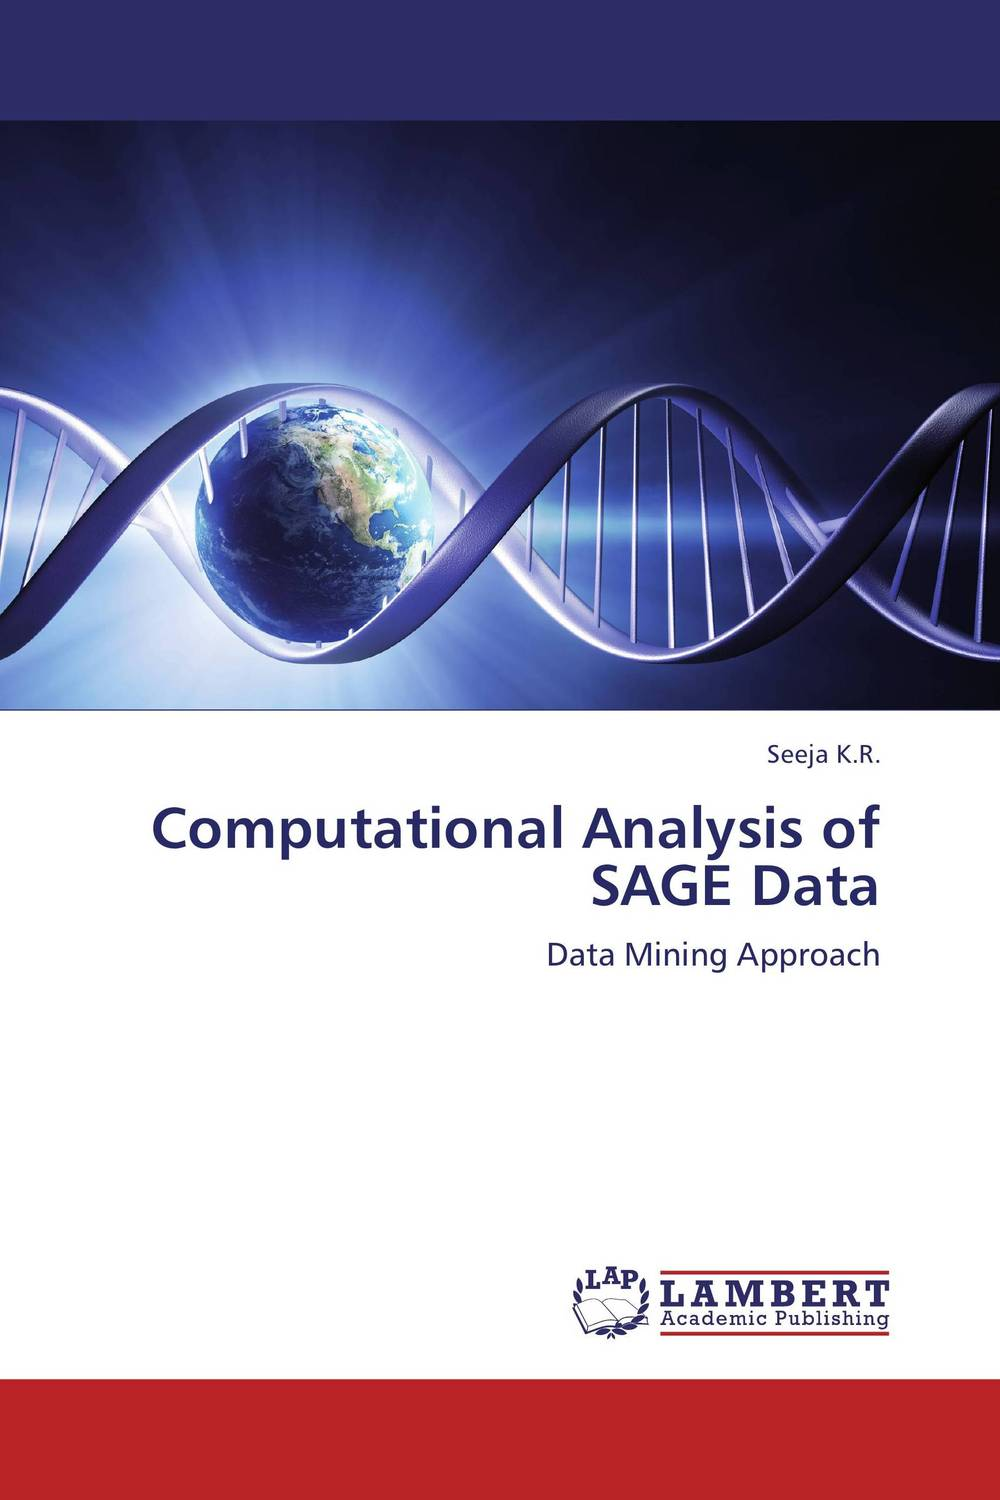 Computational Analysis of SAGE Data use of classification algorithm under data mining for managing asthma